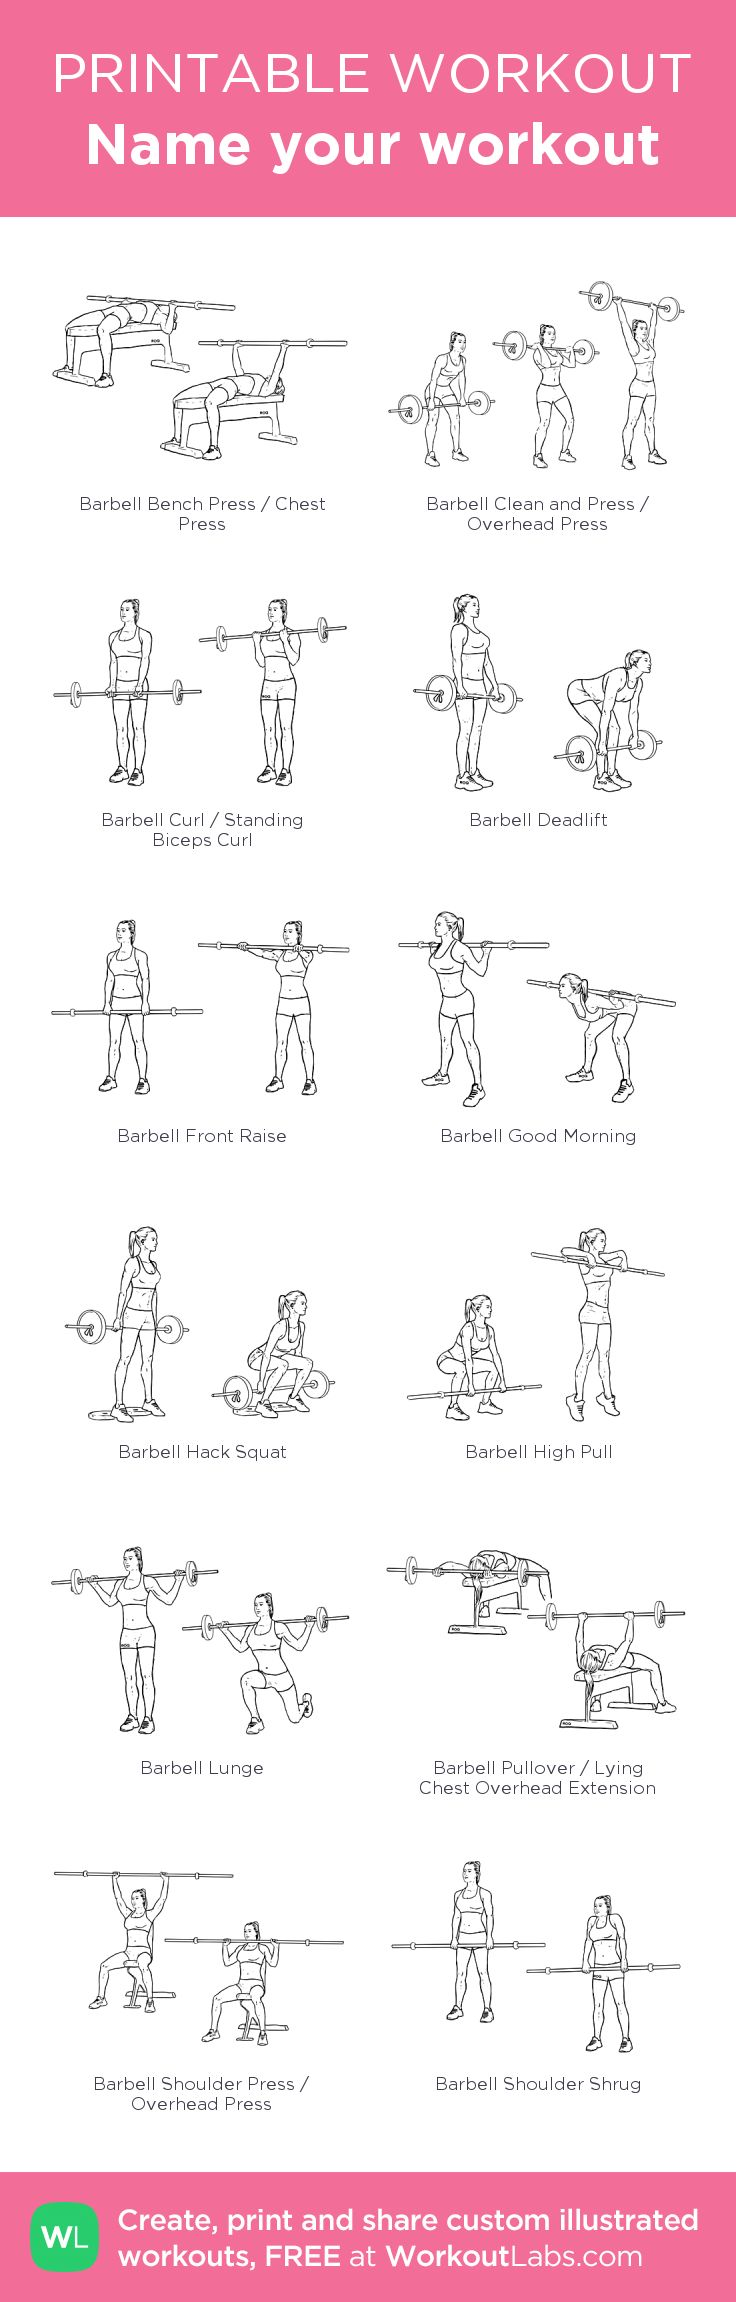 Workout 1-my visual workout created at WorkoutLabs.com •  #customworkout